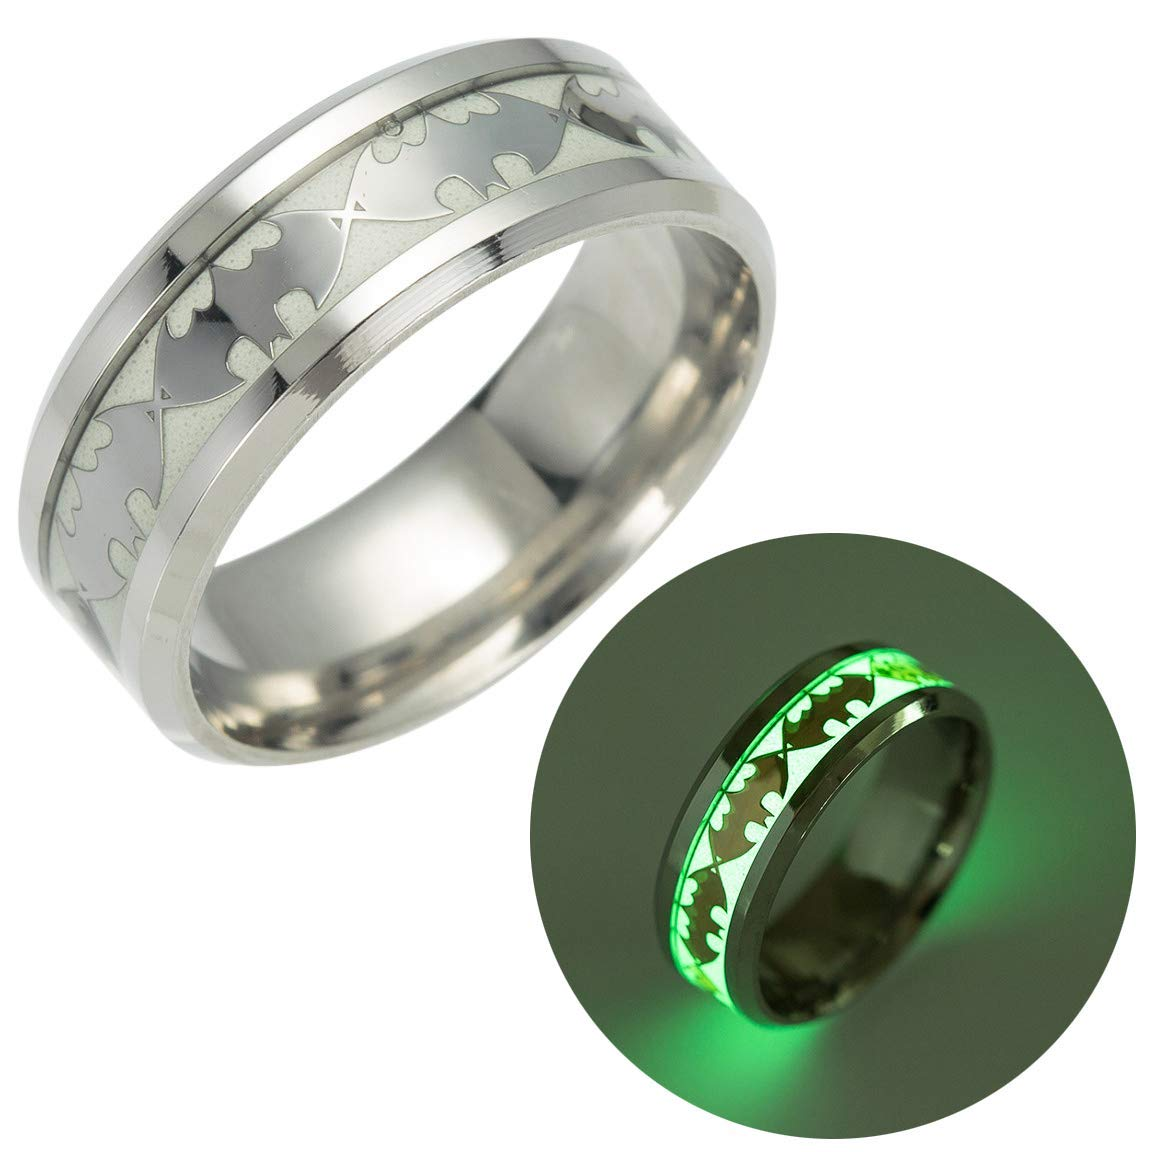 Geek & Glitter Batman Glow-in-the-Dark Ring Titanium Stainless Steel Silver Ring Band - DC Superhero Cosplay Jewelry (Silver, 12)